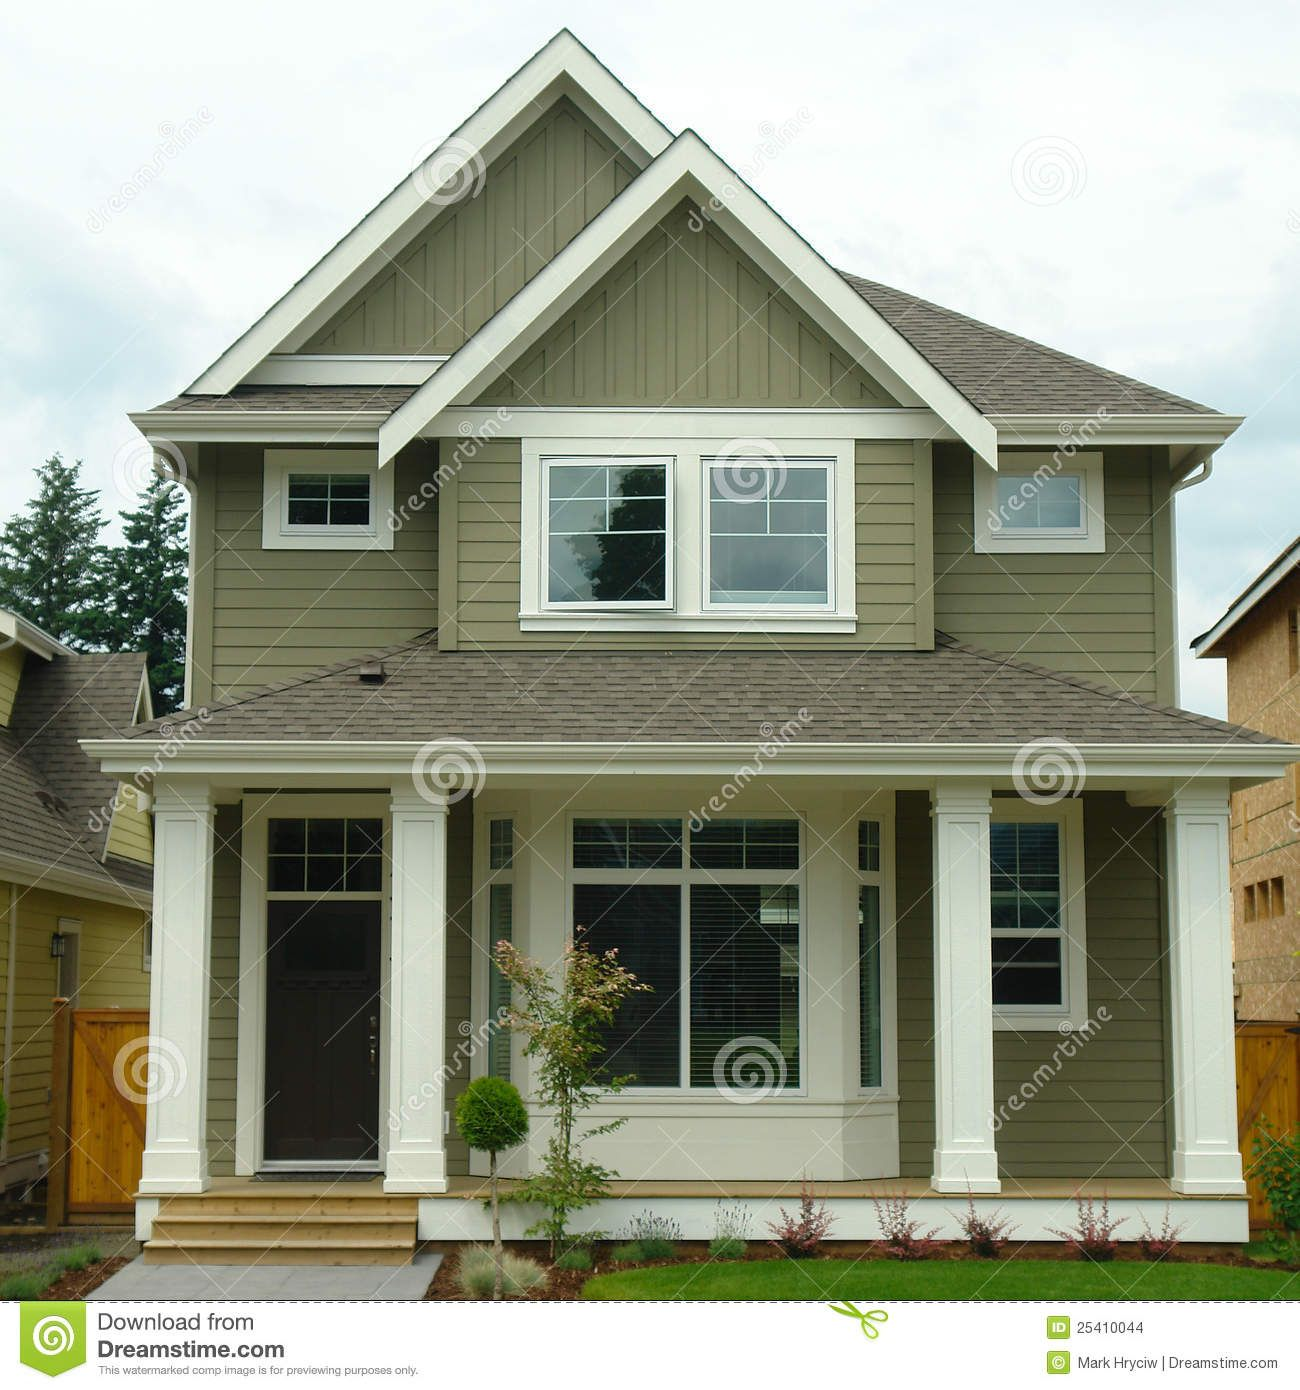 Forest Green Exterior House Color New Home House Exterior Green Exterior House